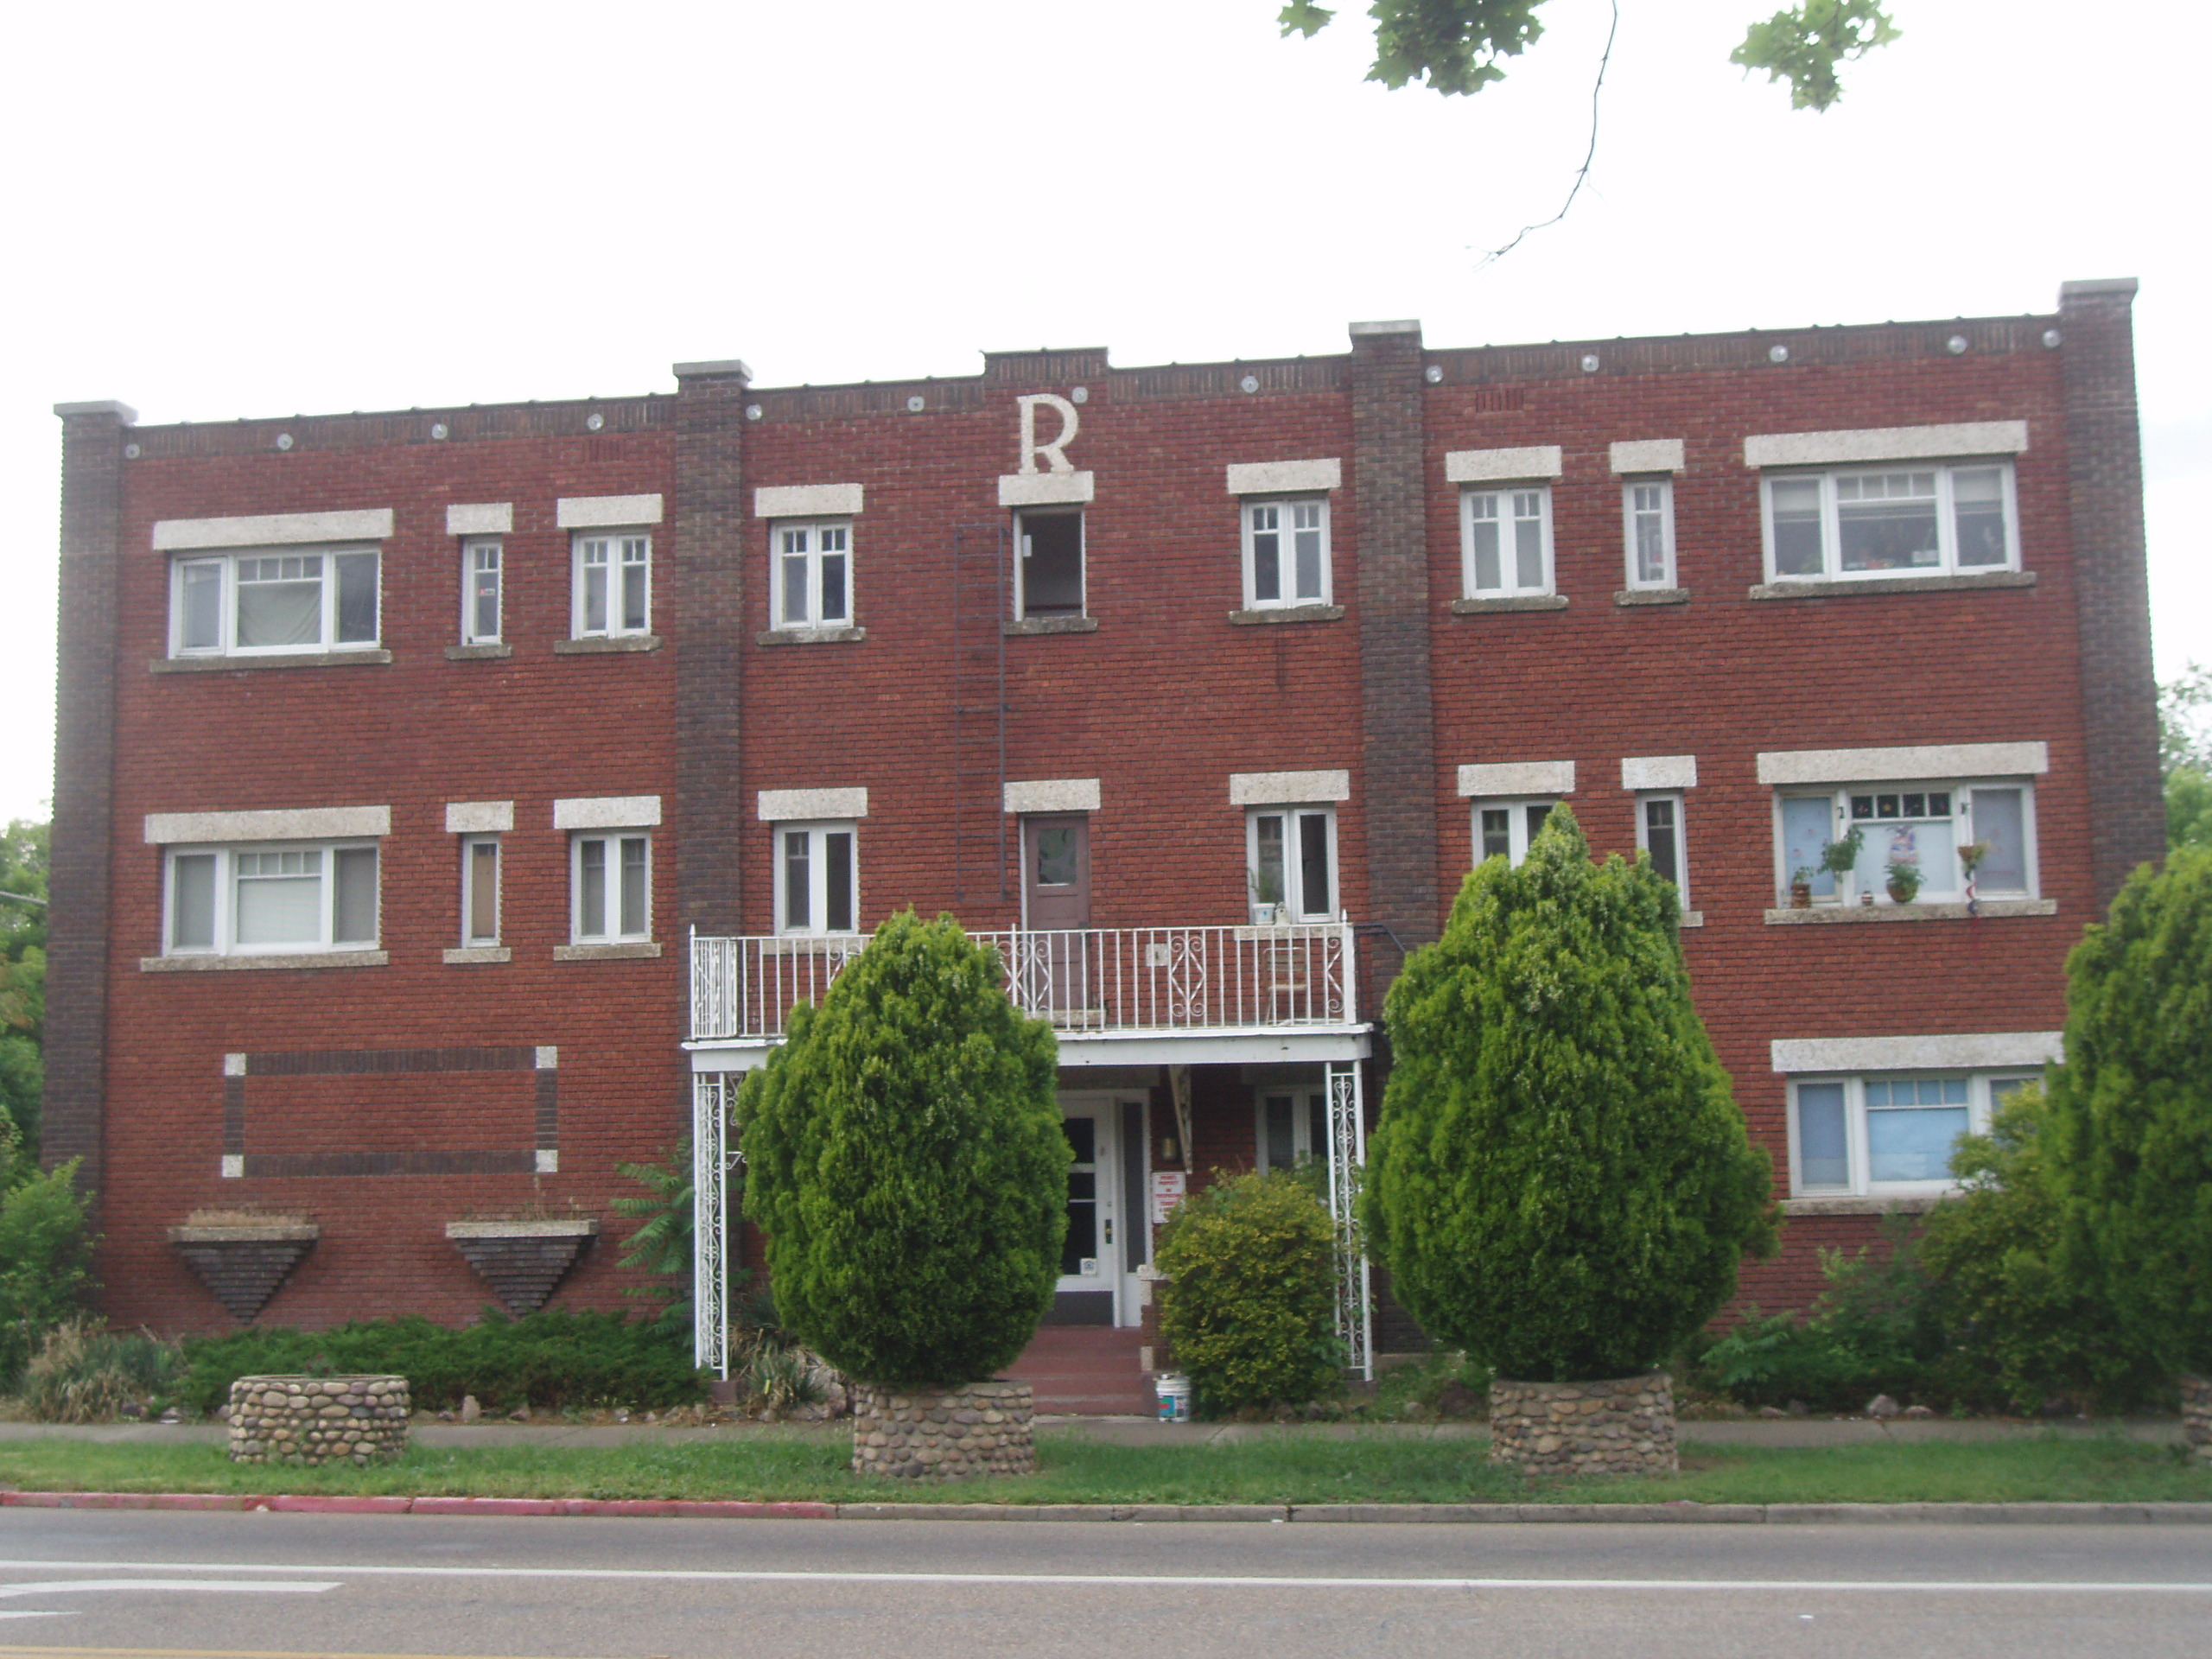 File:Hillcrest Apartments Ogden Utah.jpeg - Wikimedia Commons